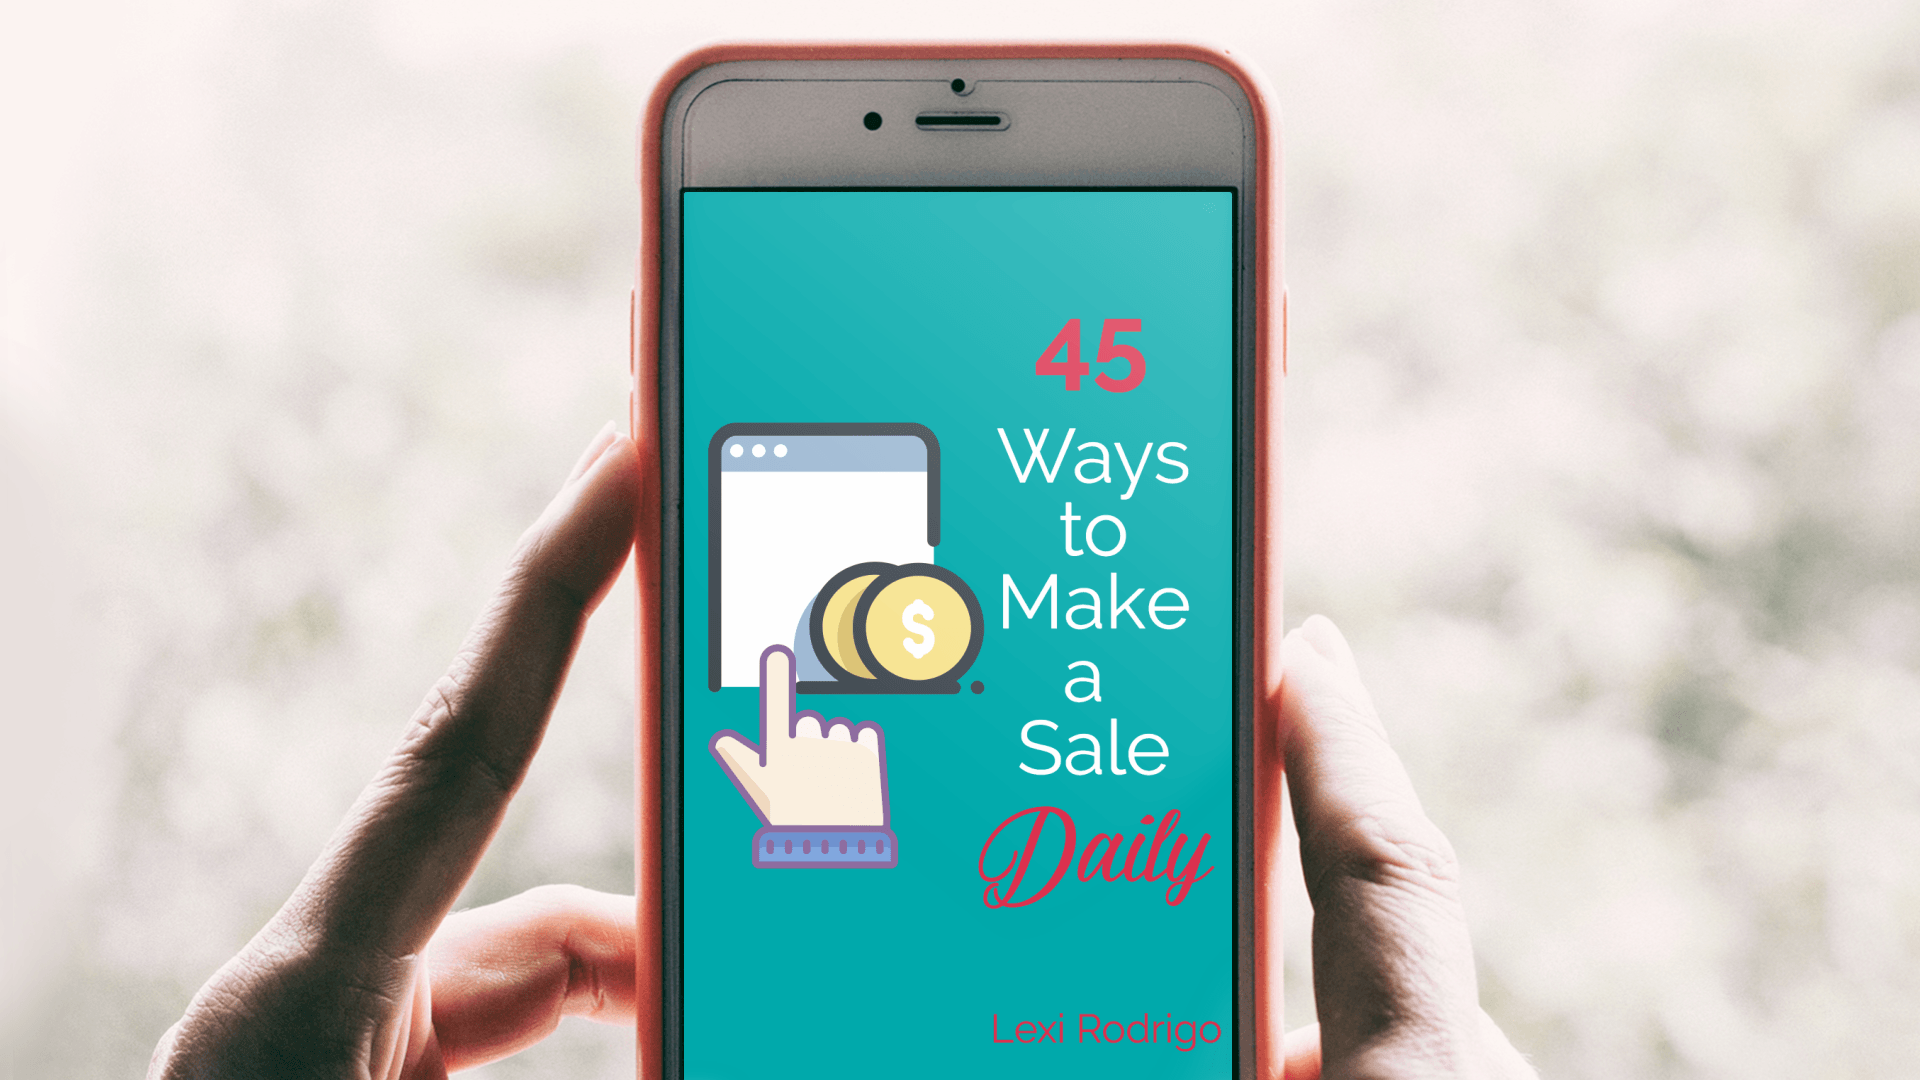 45 Ways to Make a Sale Daily